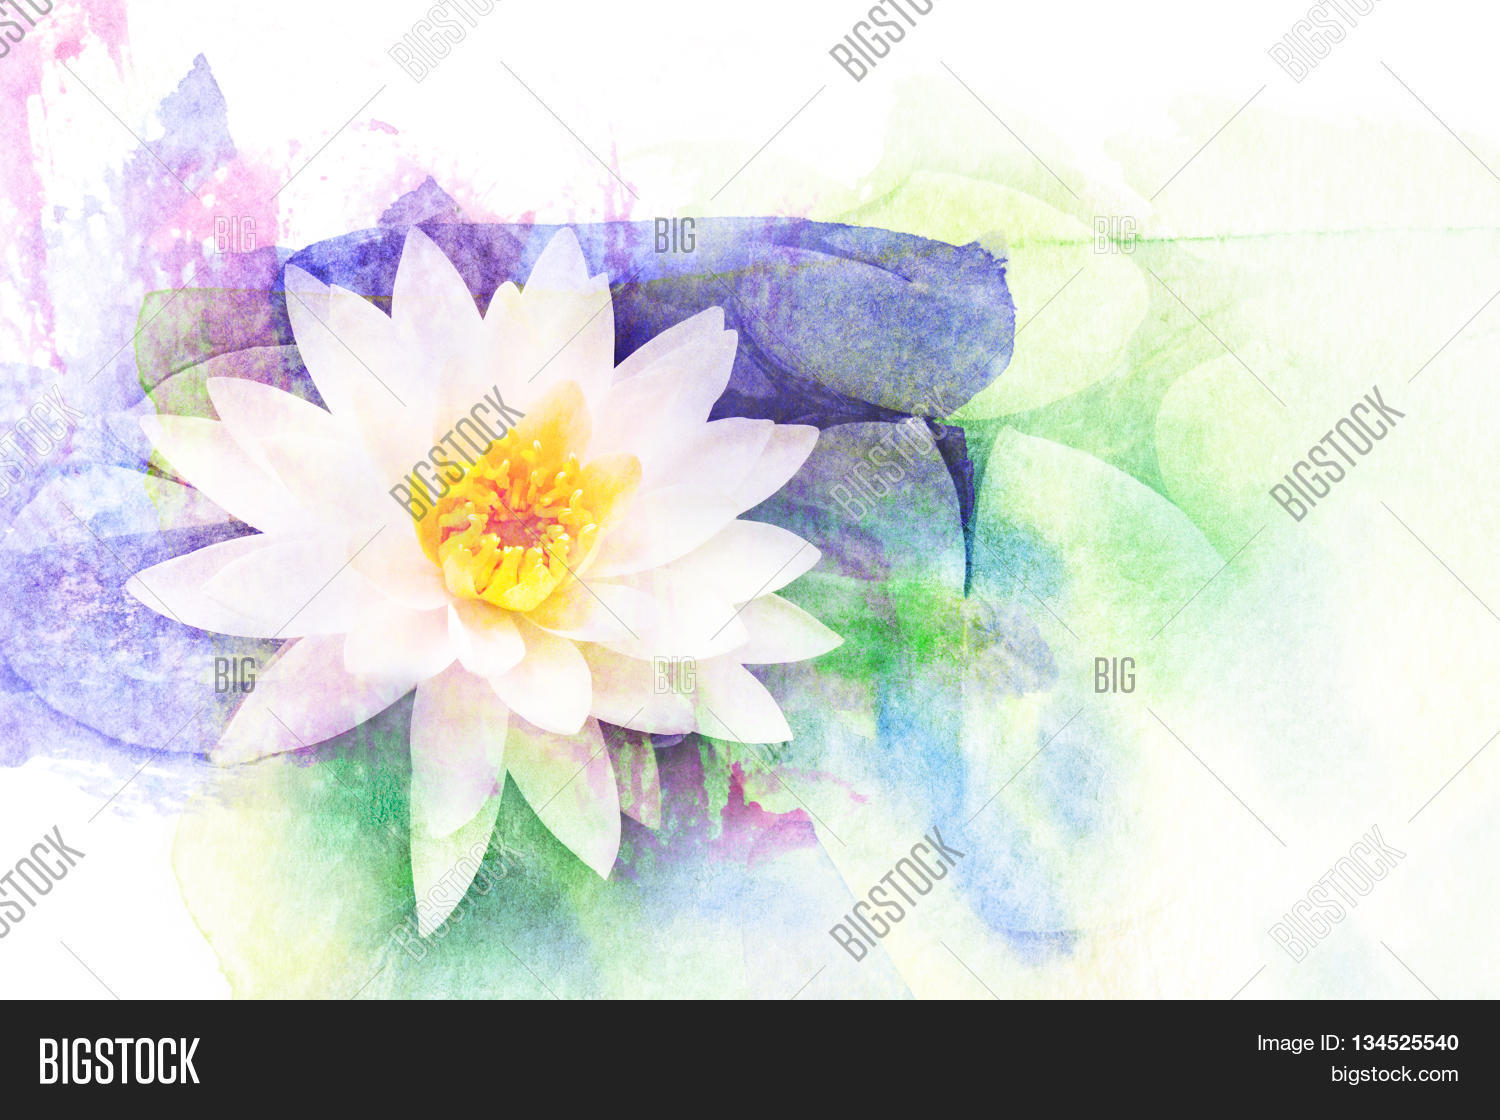 Abstract Watercolor Image Photo Free Trial Bigstock